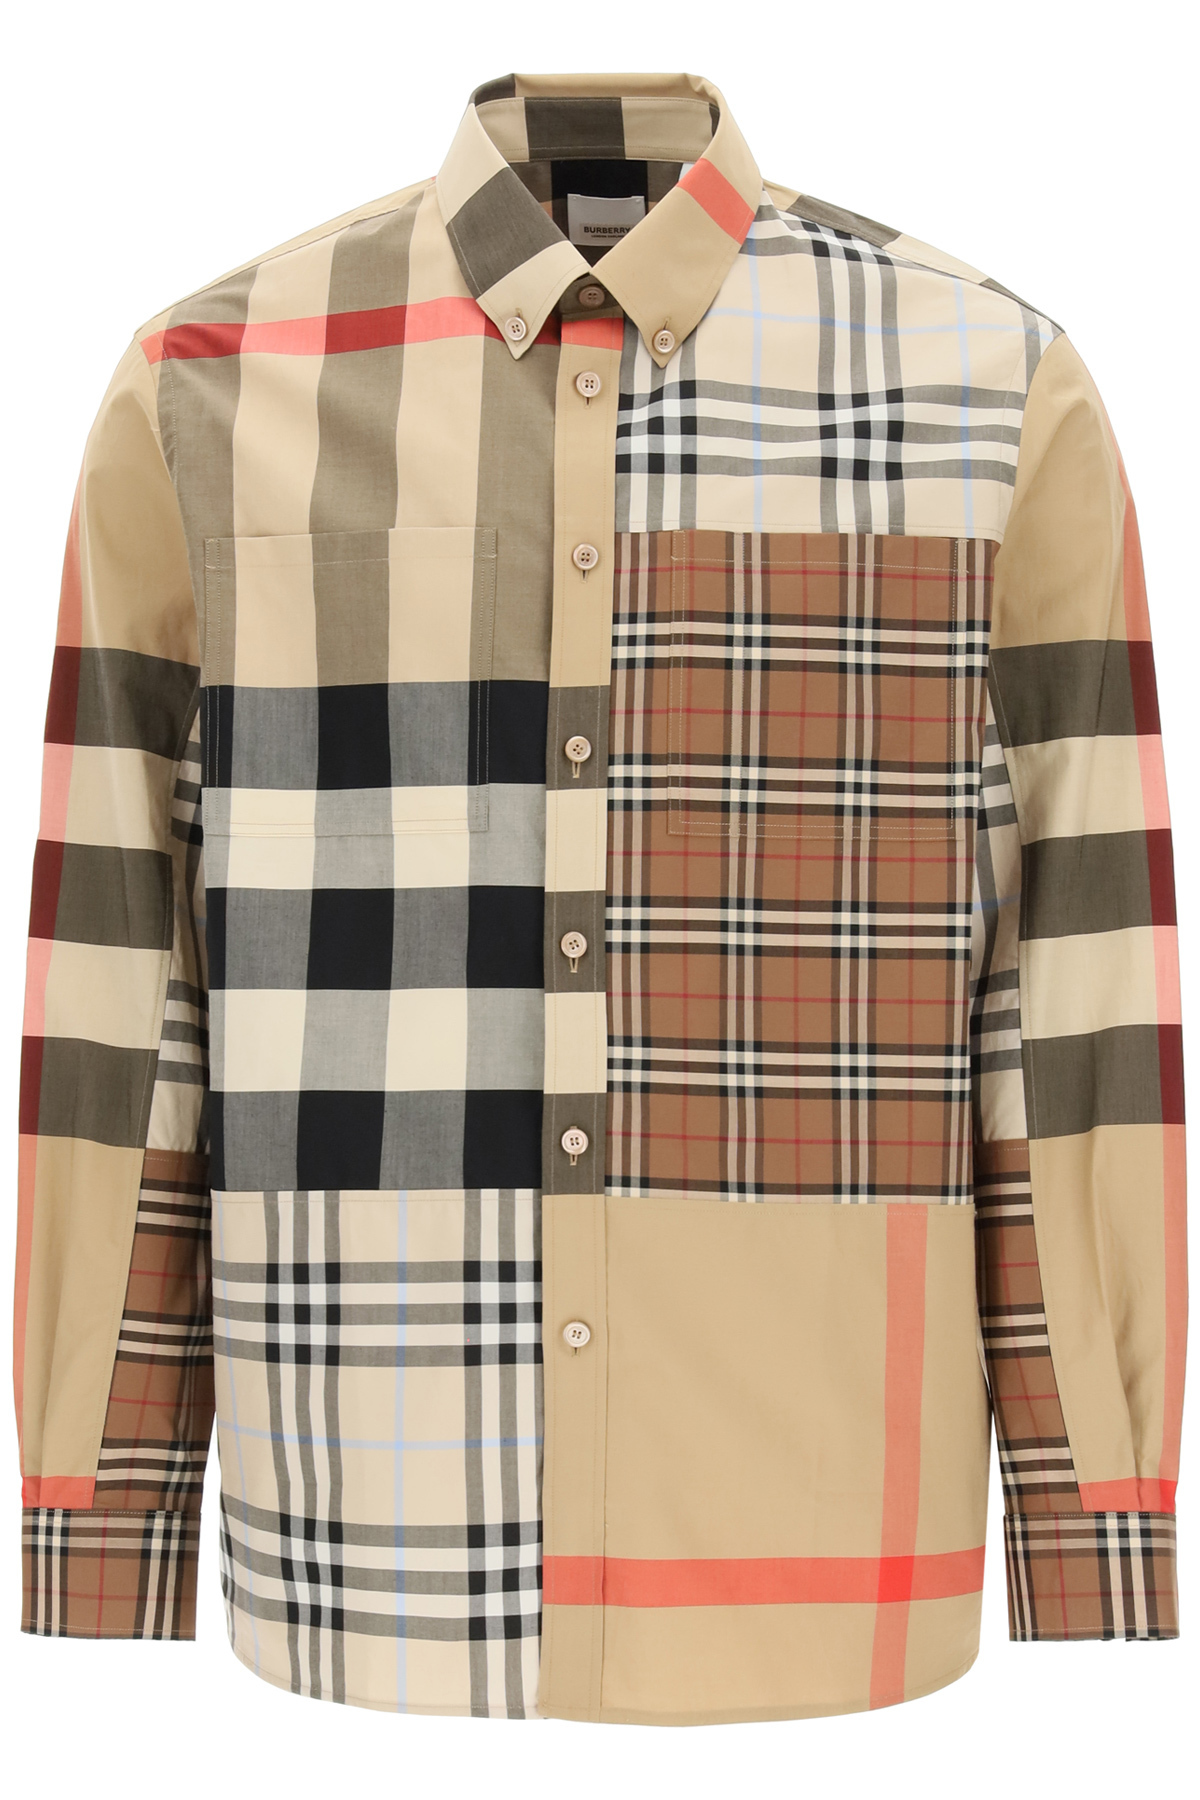 BURBERRY TERENCE SHIRT M Beige, Brown, Black Cotton